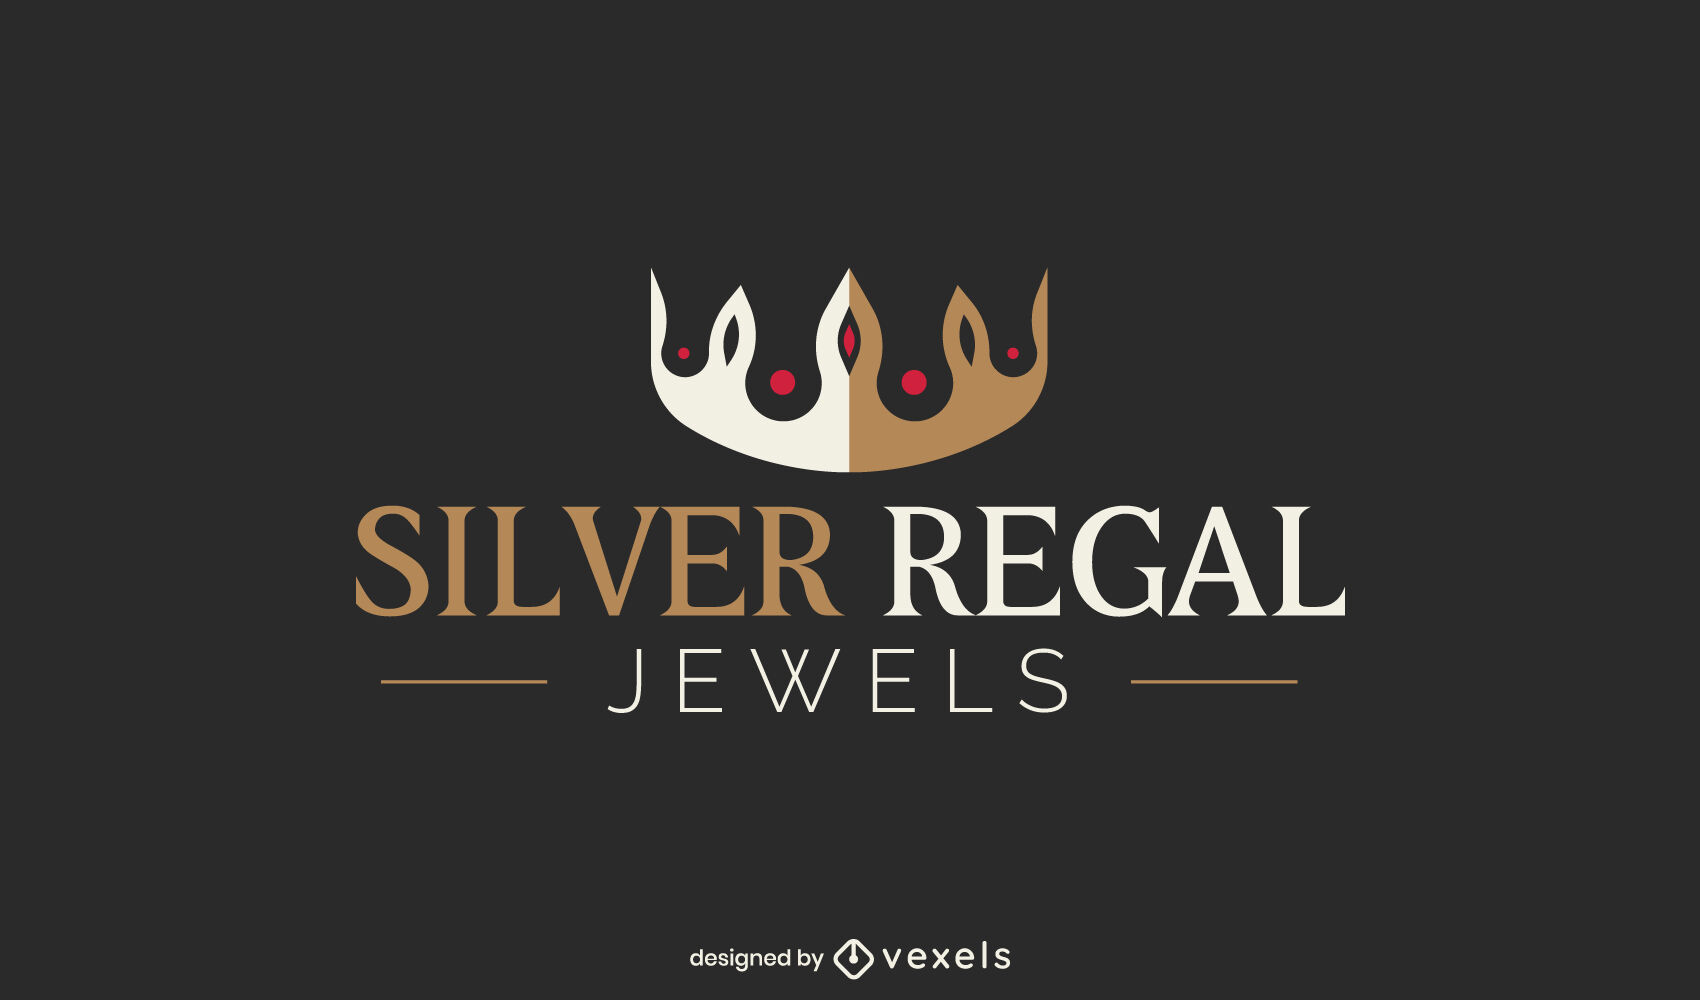 King crown jewelry business logo template